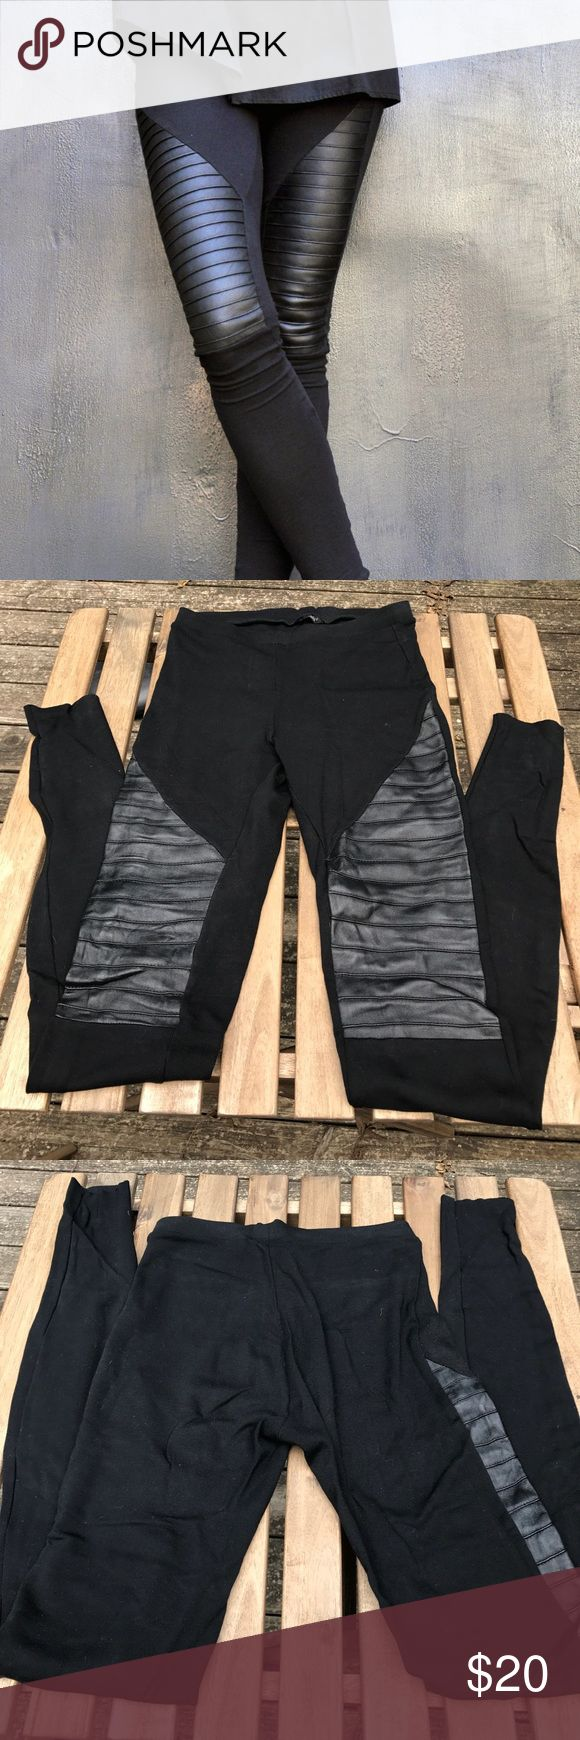 """Leggings with Leather Front By Bulgarian designer Aakasha. This Listing is NOT Allsaints, using only for exposure. Soft viscose leggings with real leather panels. Inseam 32"""", waist 13"""" and there's stretch. Fits size 4-6. Very flattering. Worn just once. All Saints Pants Leggings"""